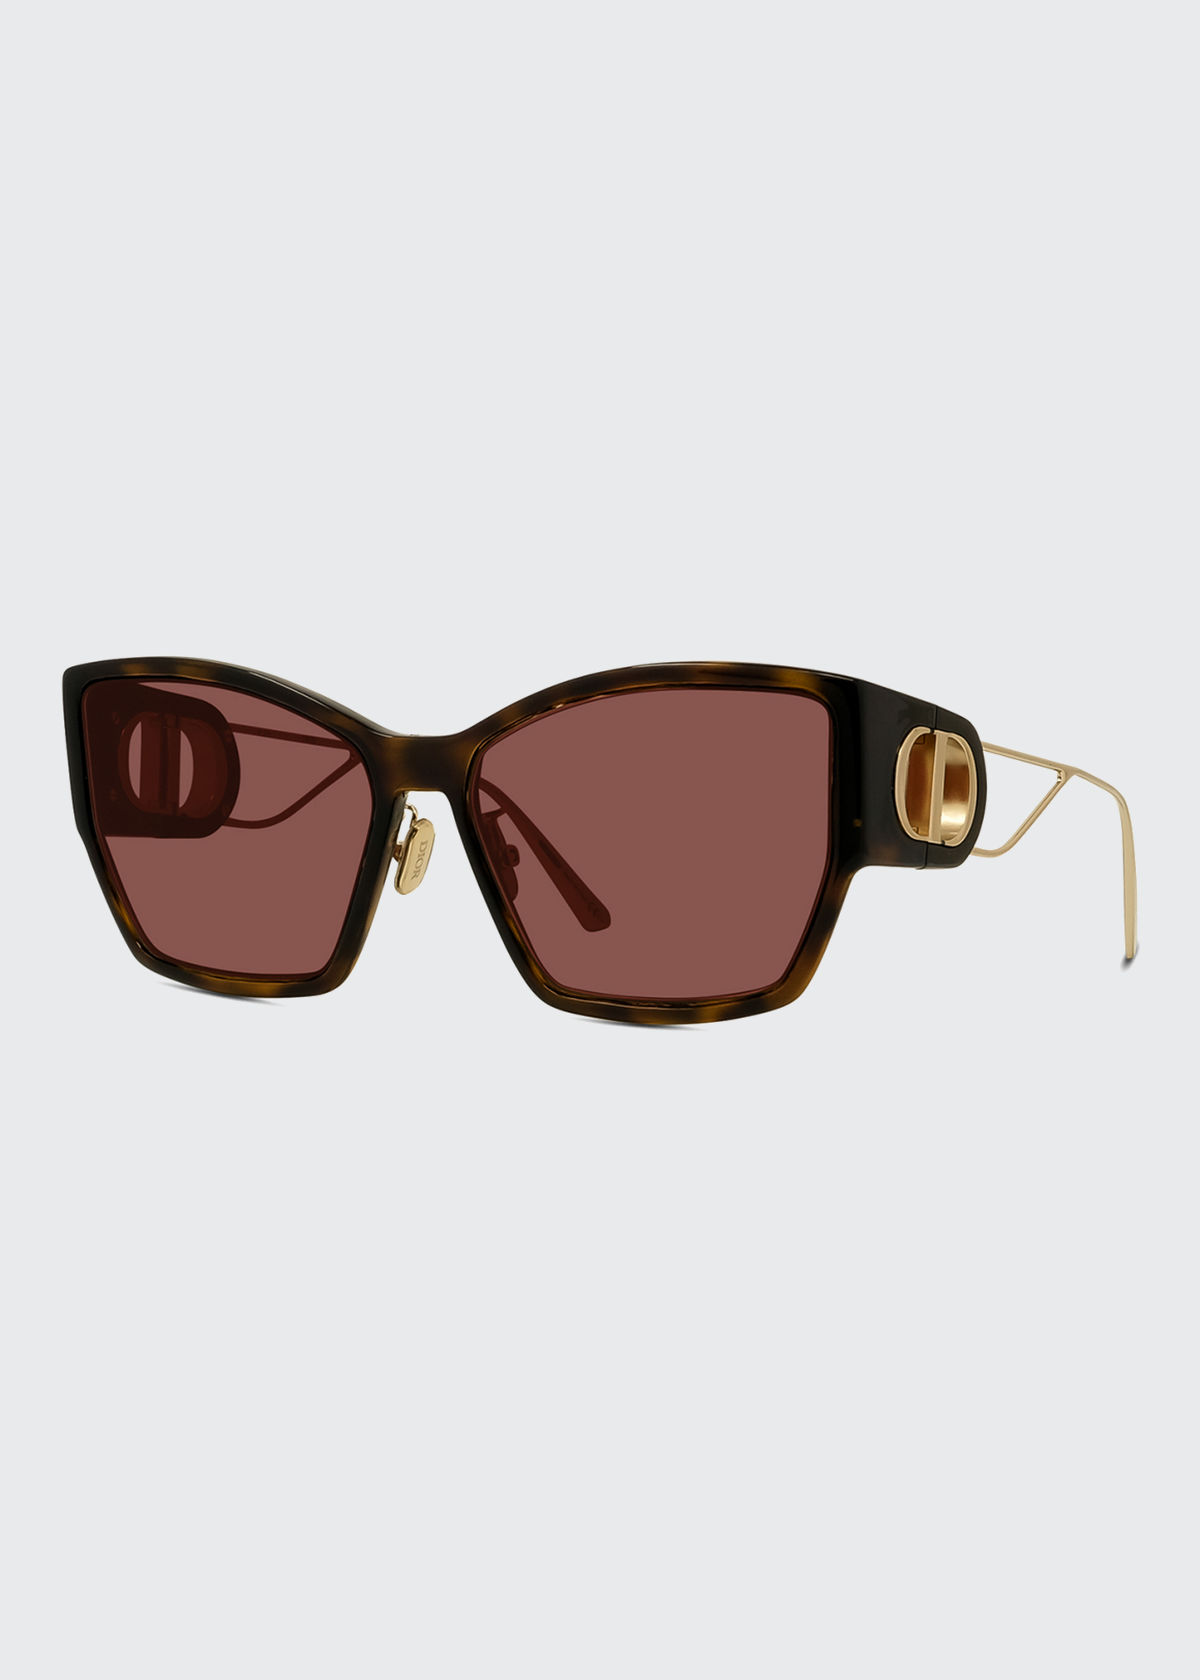 Dior INJECTION PLASTIC BUTTERFLY SUNGLASSES